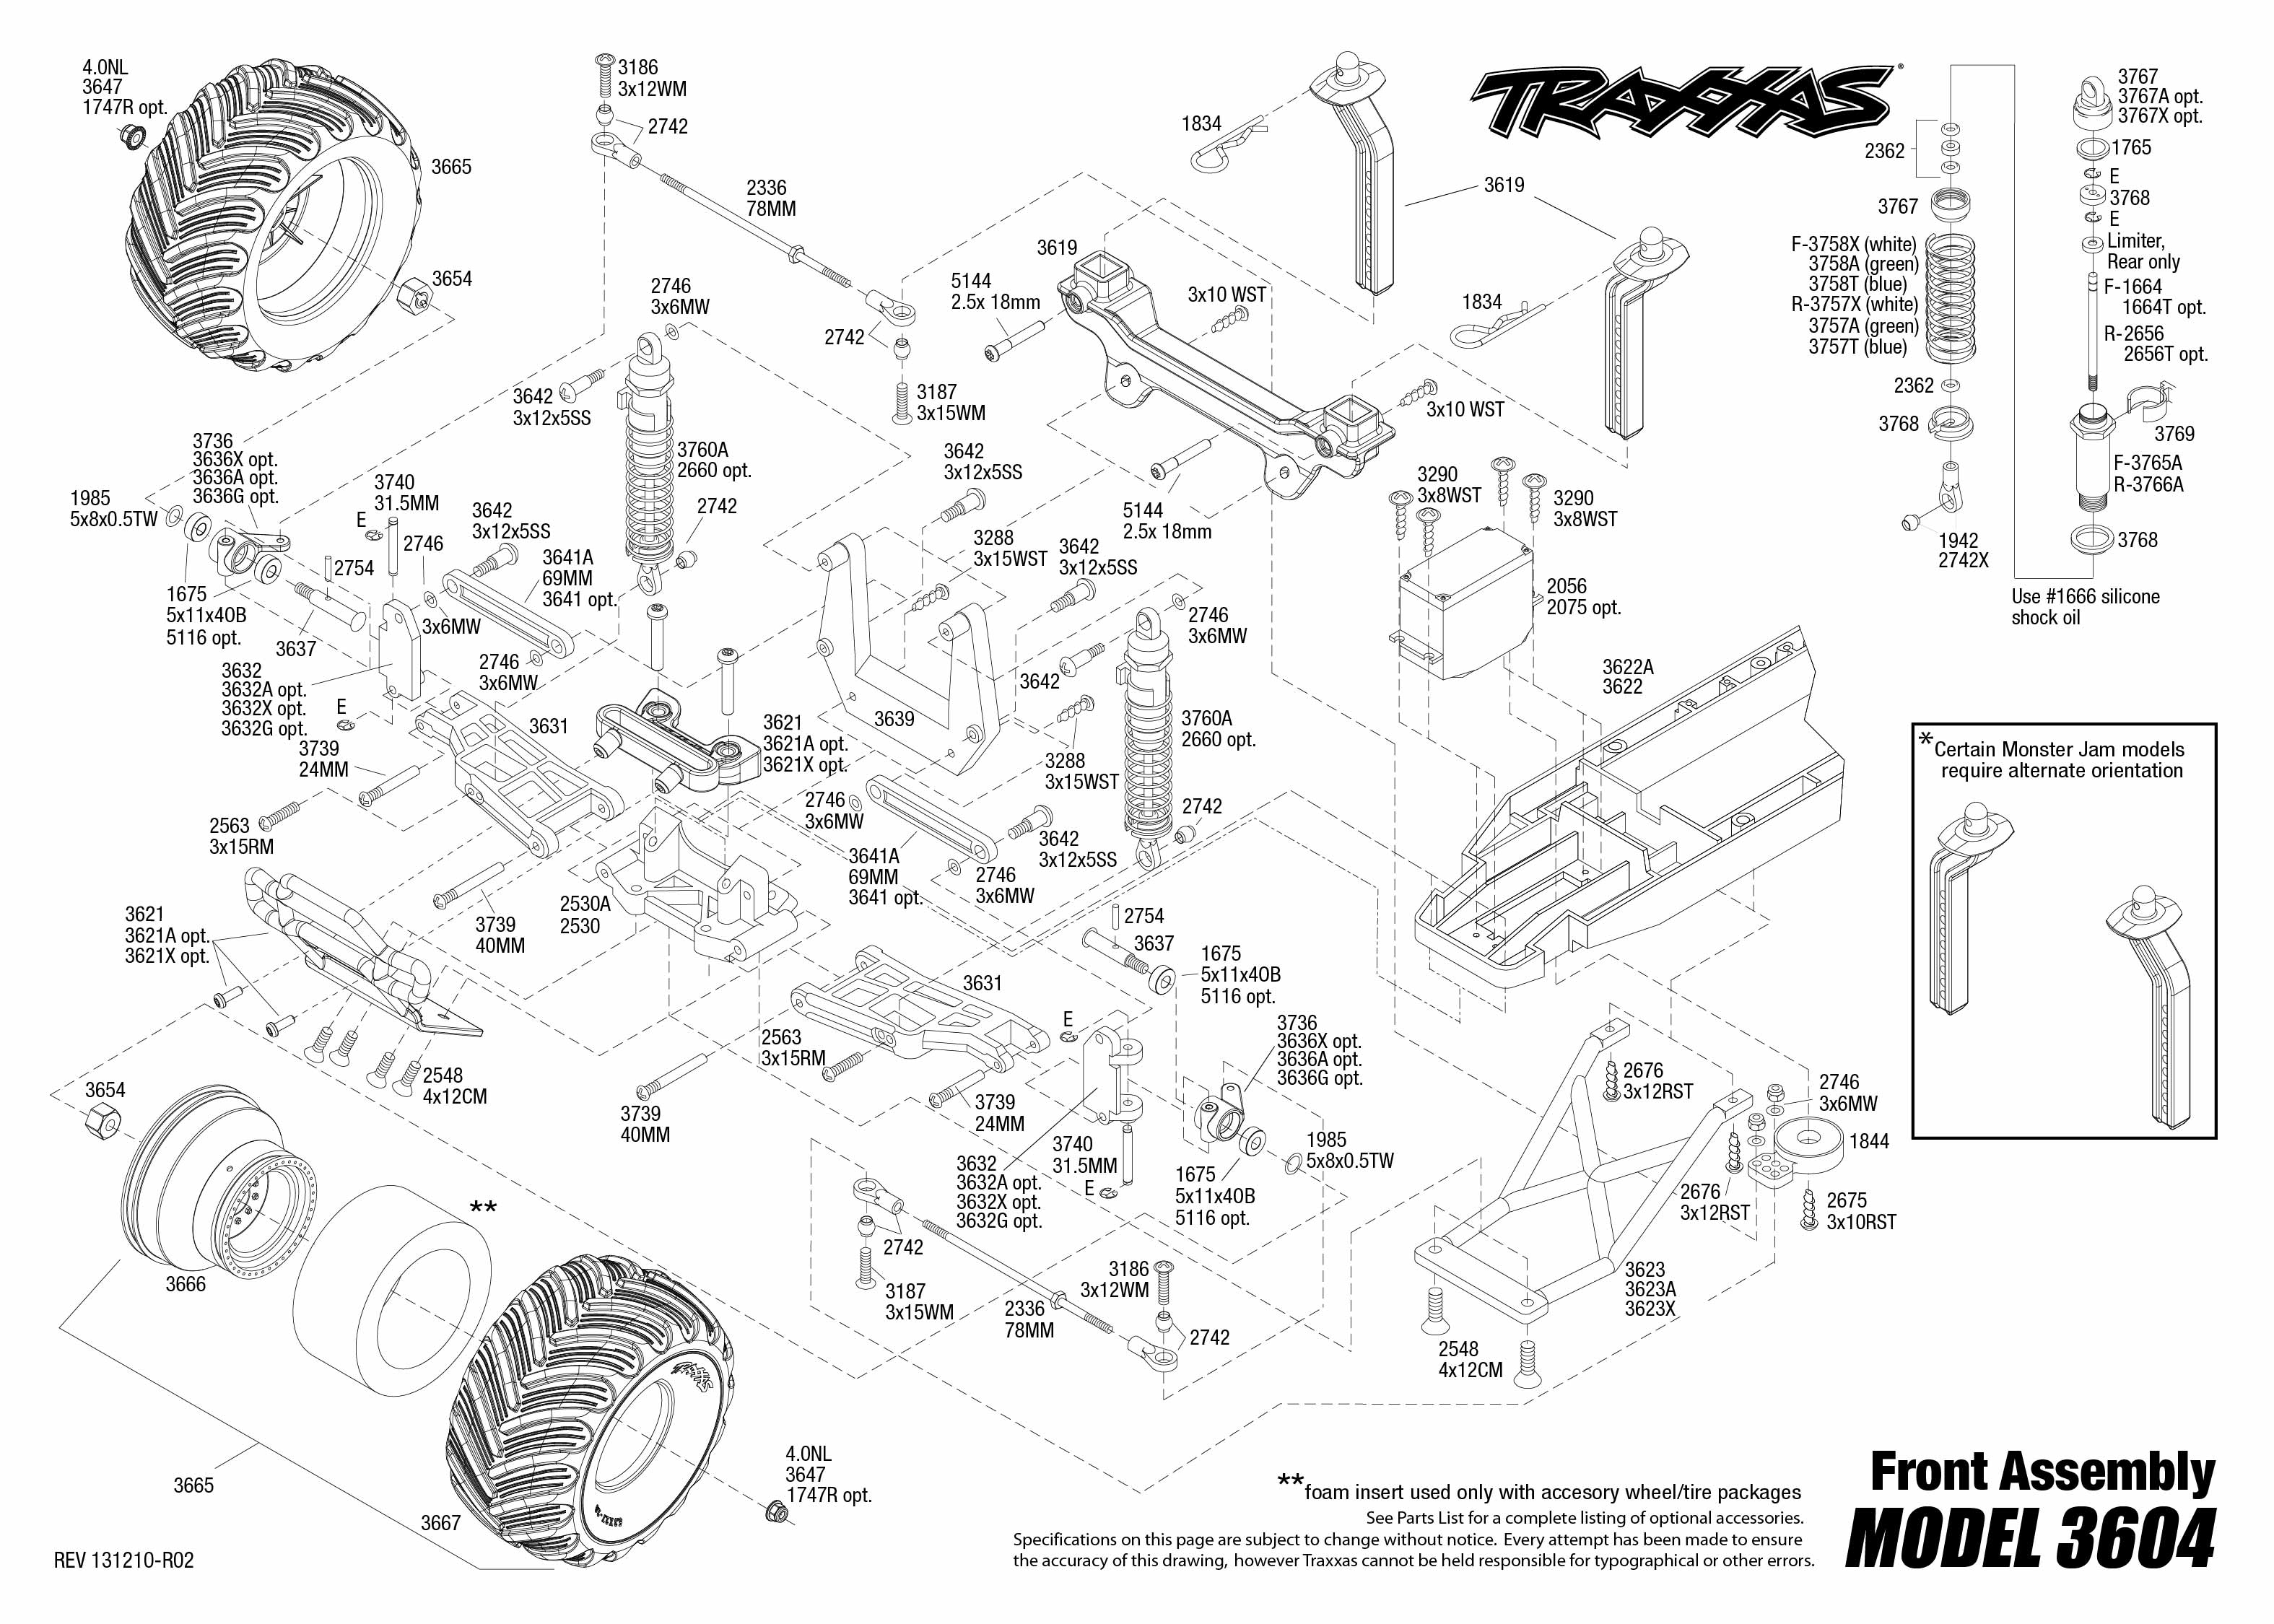 Stampede 4x4 Vxl Parts Diagram Traxxas 1 10 Scale 2wd Monster Truck 3607l Exploded Views Voor Modellen 3150x2250